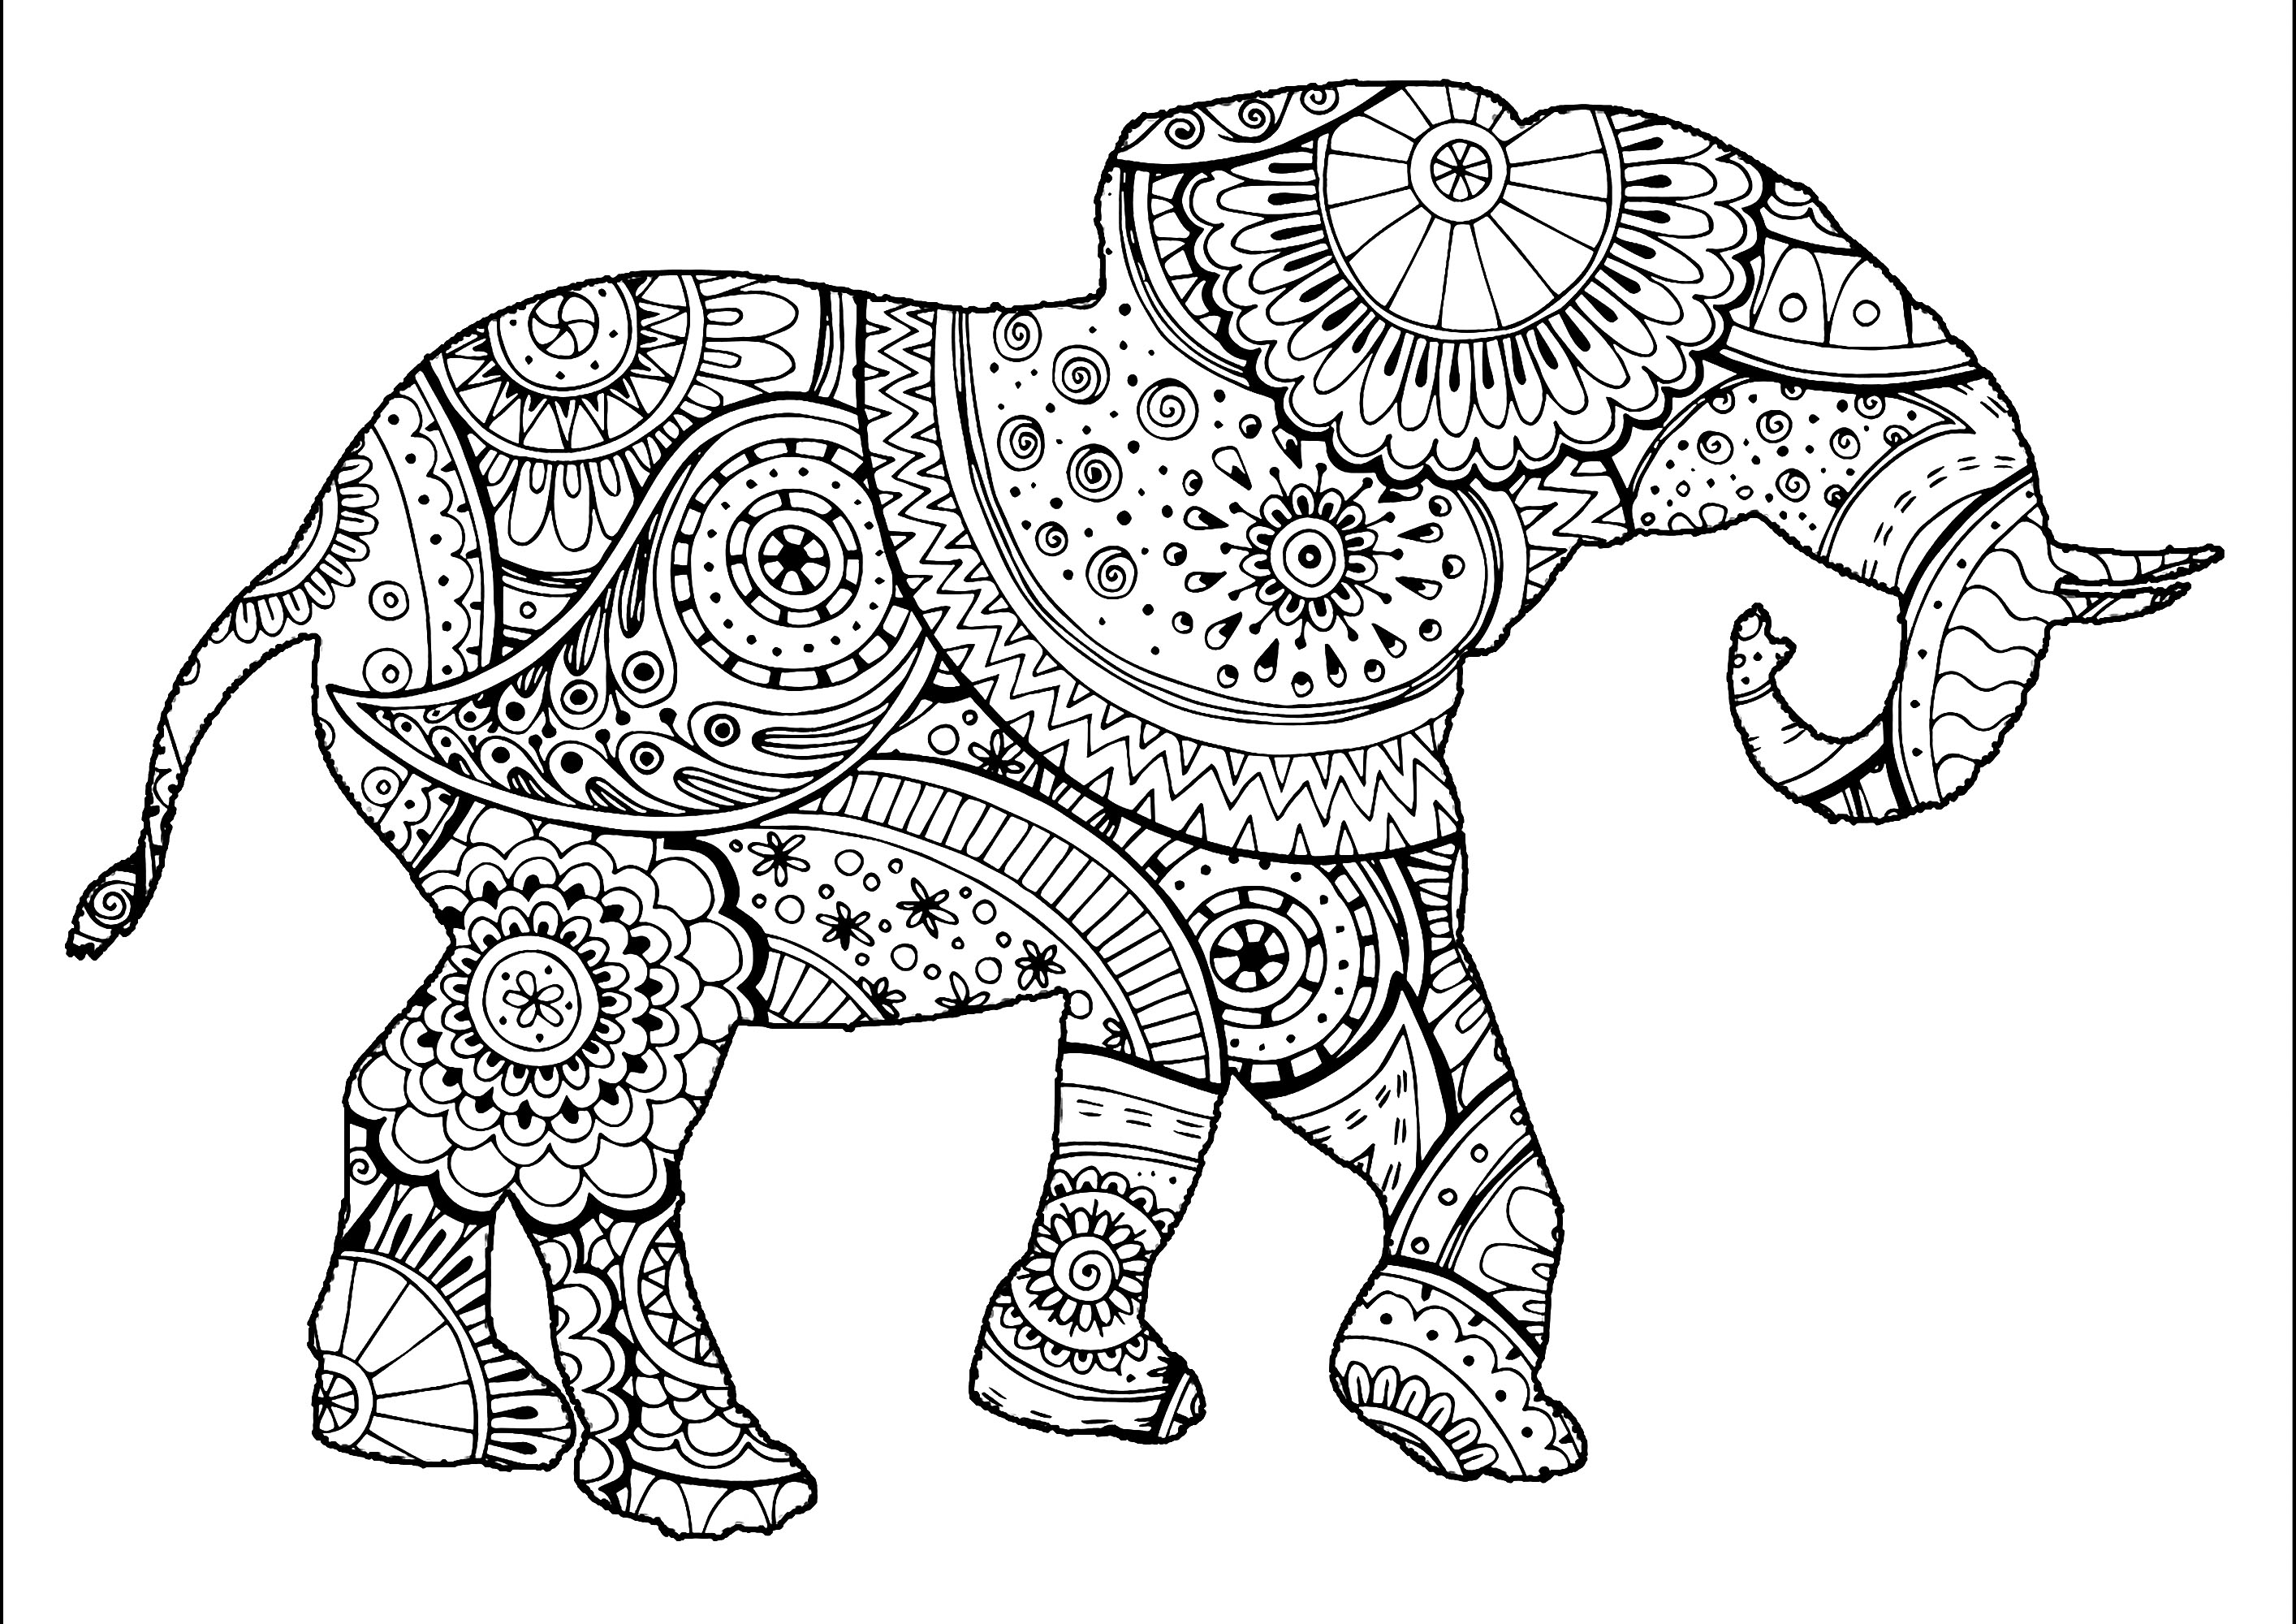 Free zentangle elephant coloring pages ~ Elephant shape with patterns - Elephants Adult Coloring Pages